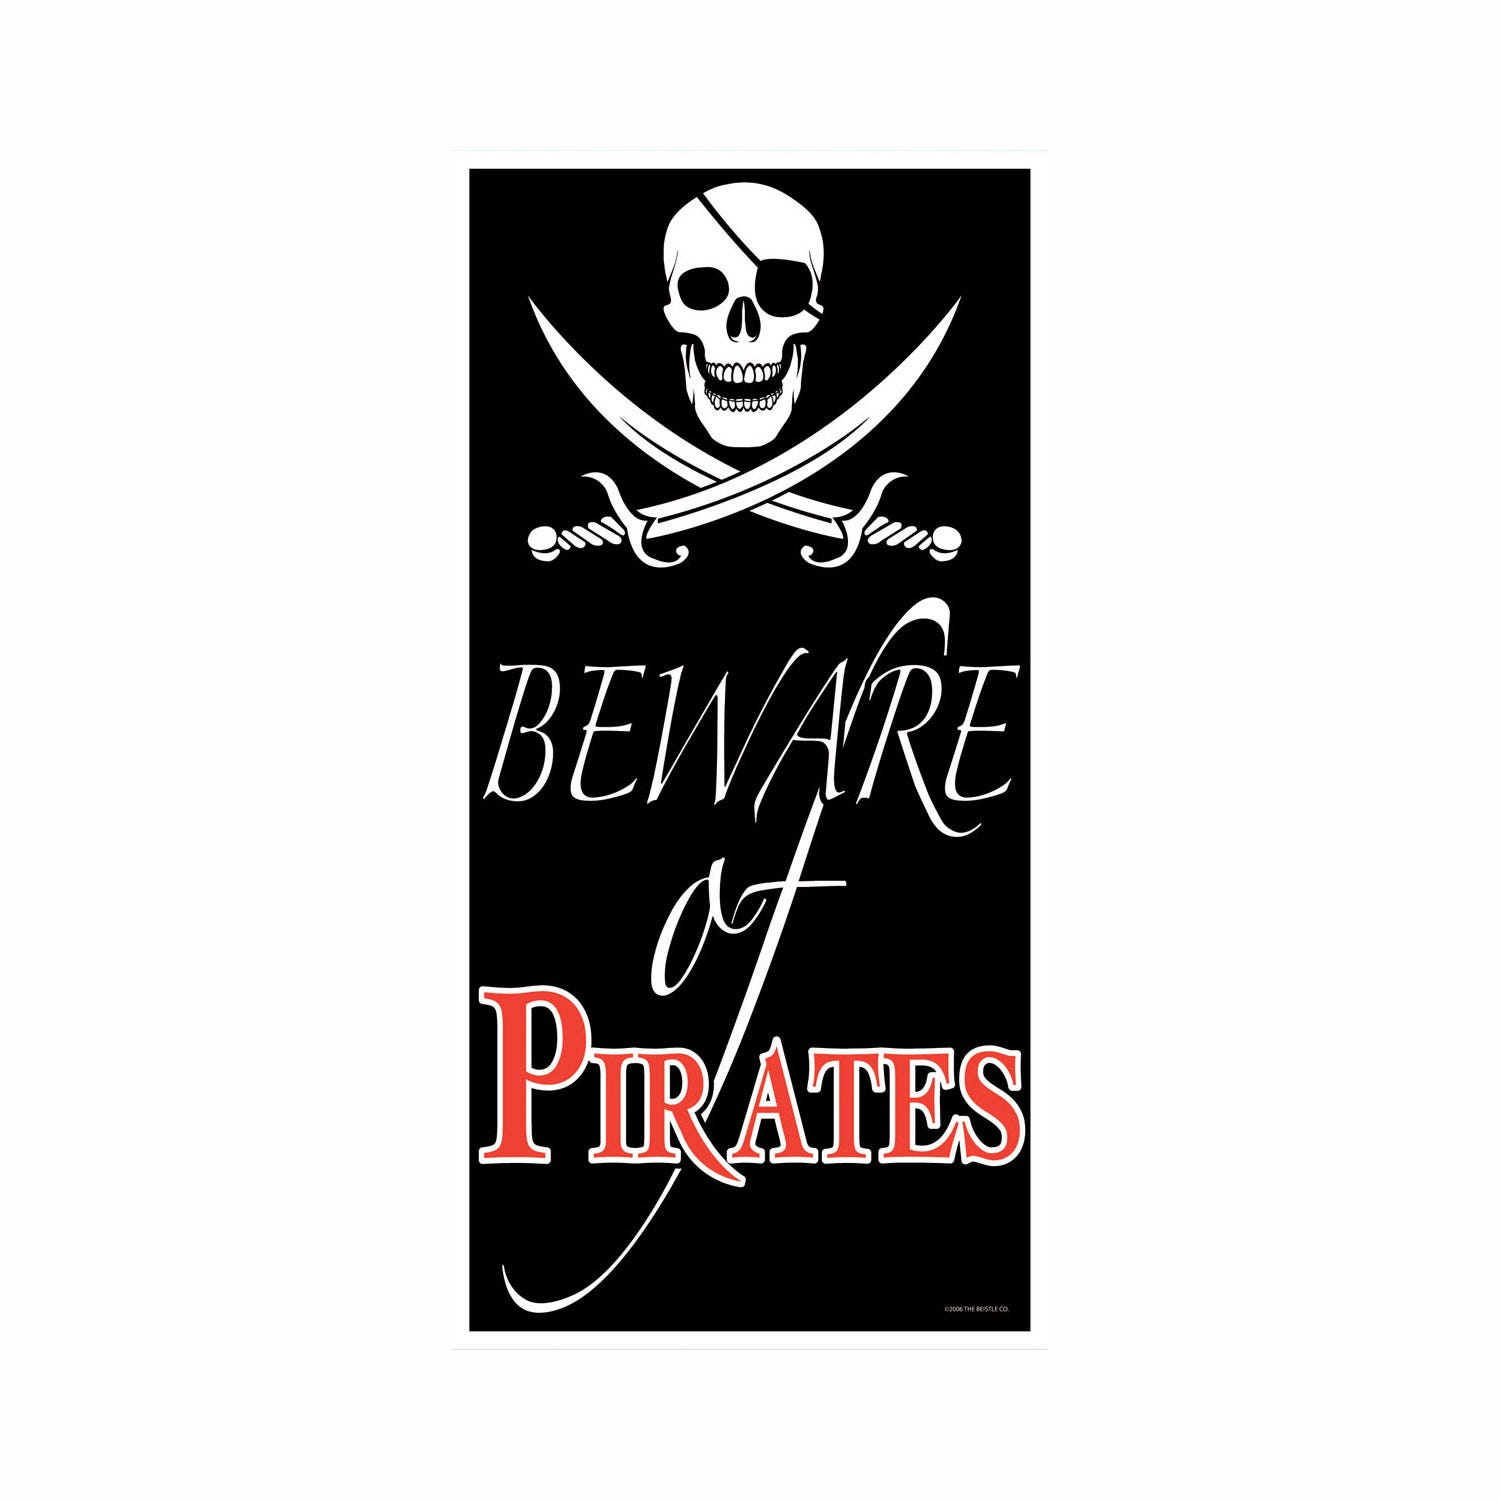 Pirate Party Door Cover Beware Of Pirates Banner Poster Plastic Wall Decoration 34689500087 Ebay